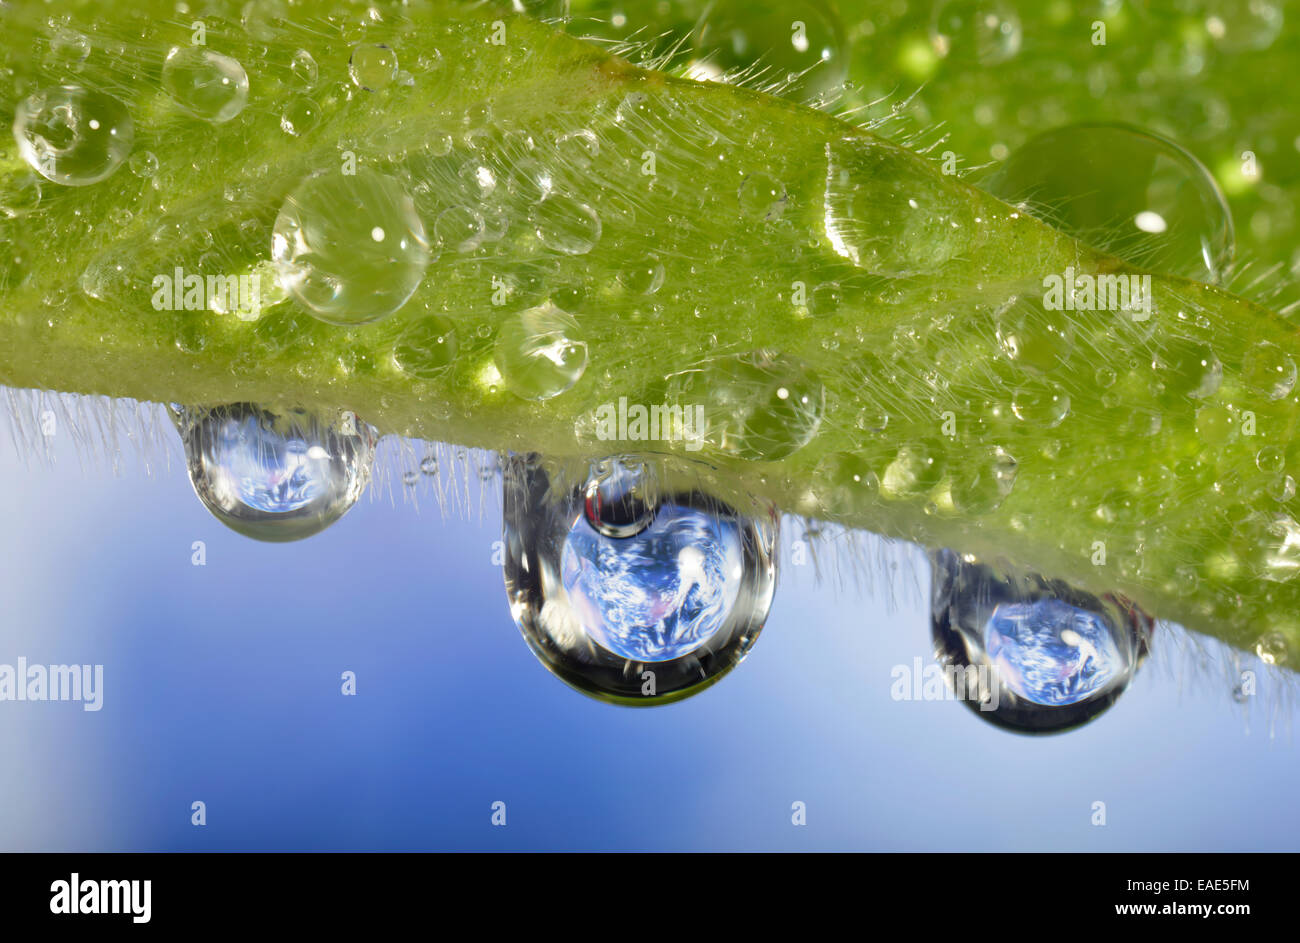 Planet Earth reflected in dewdrops, symbolic image of water as an elixir of life, Germany Stock Photo